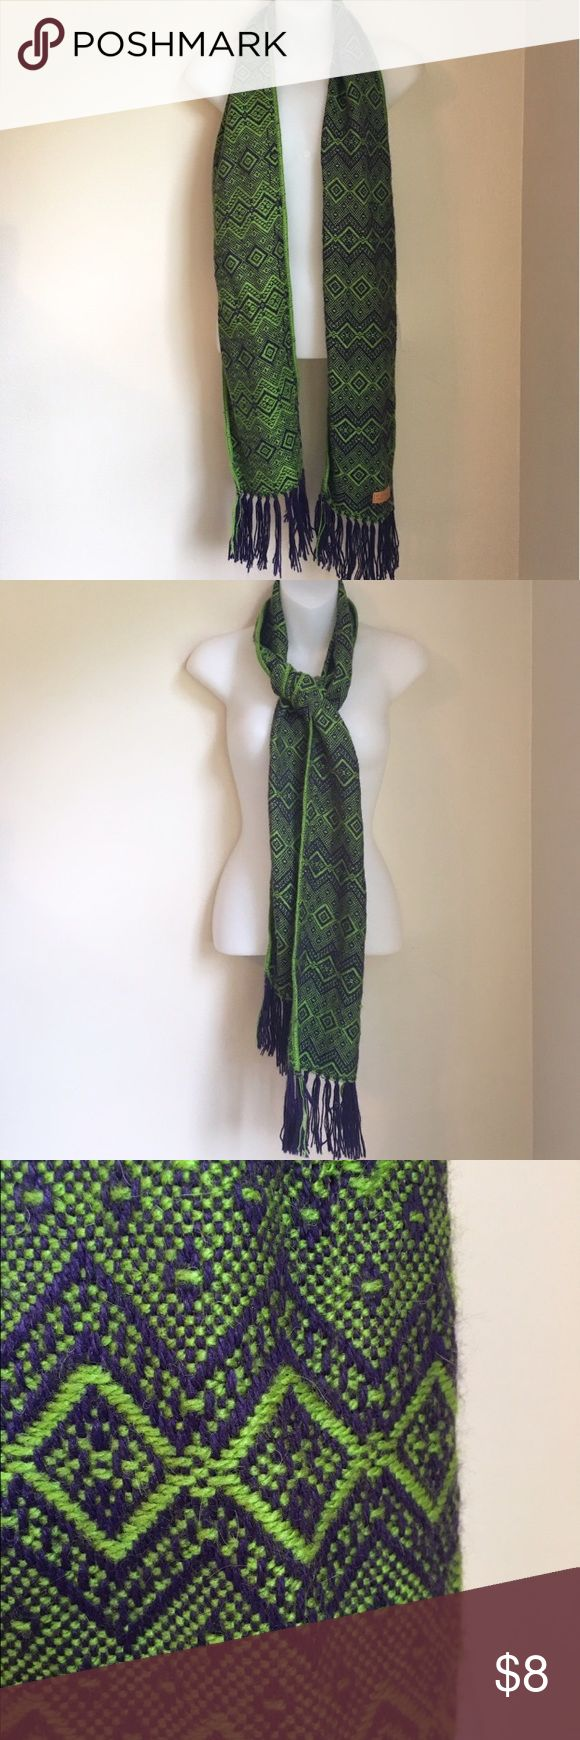 Alpaca Scarf💚 Cute knit scarf with fringe! In perfect condition. Alpaca Accessories Scarves & Wraps